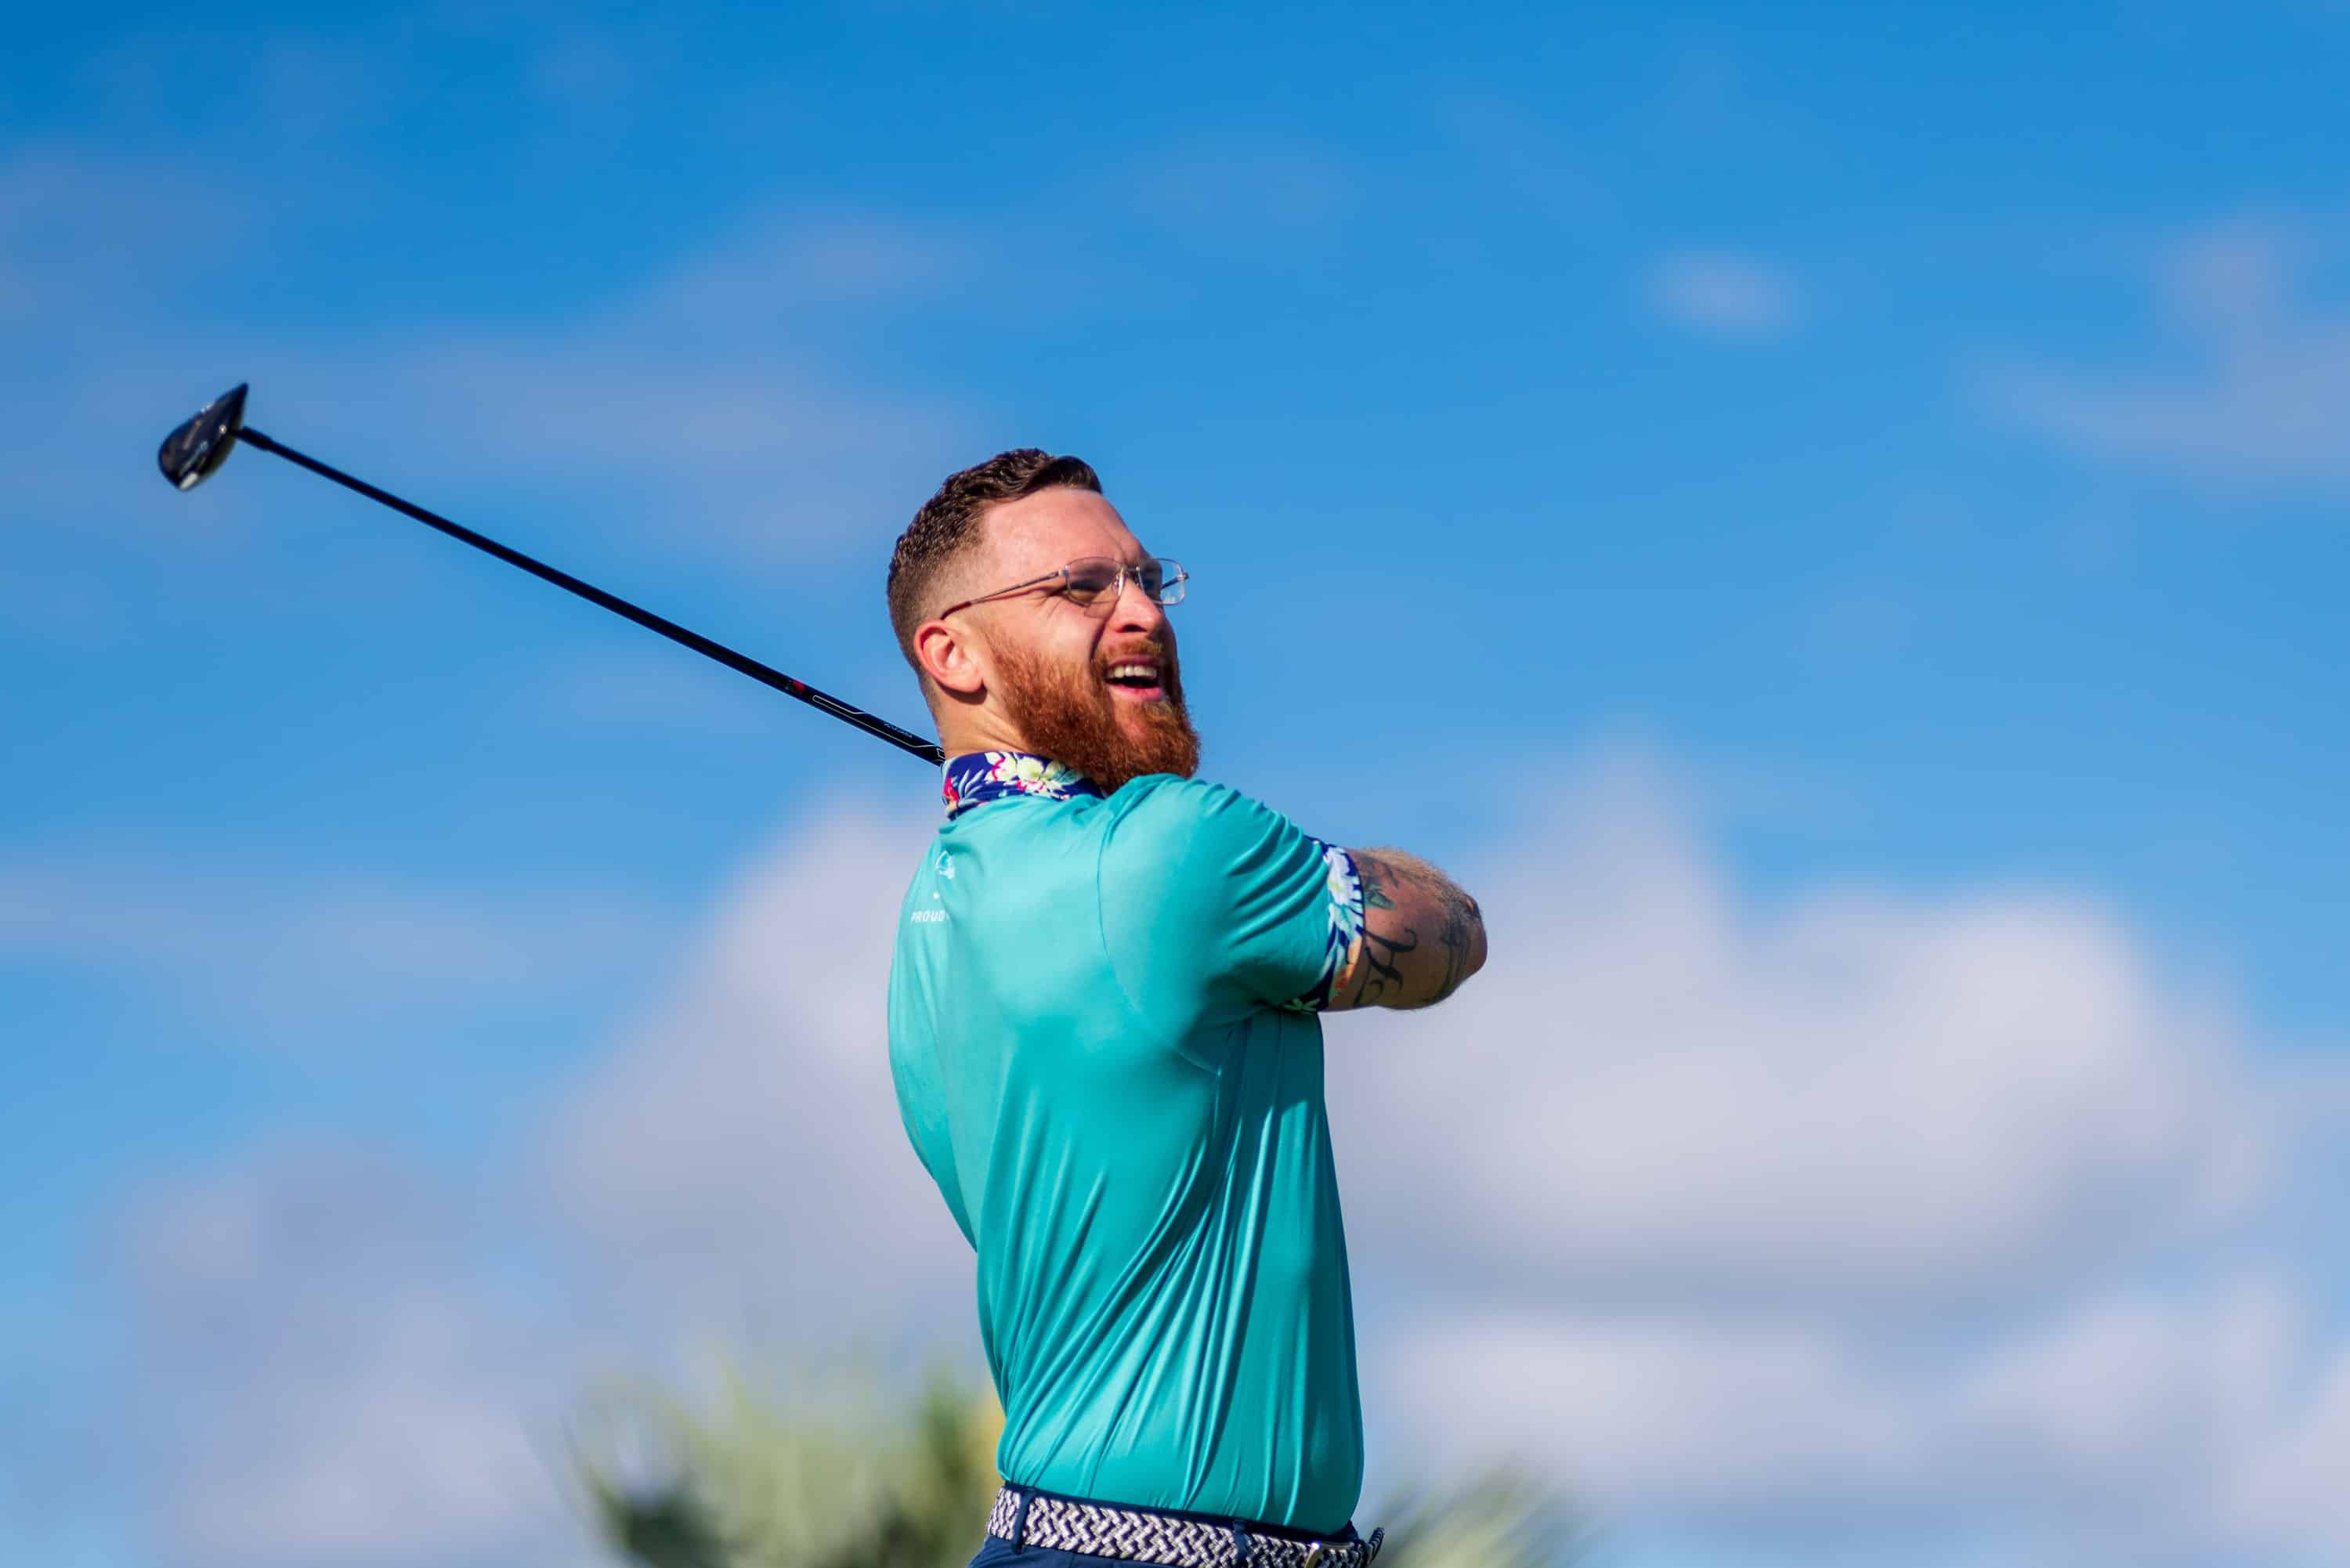 photo of a man playing olf to illustrate mind management for golfers